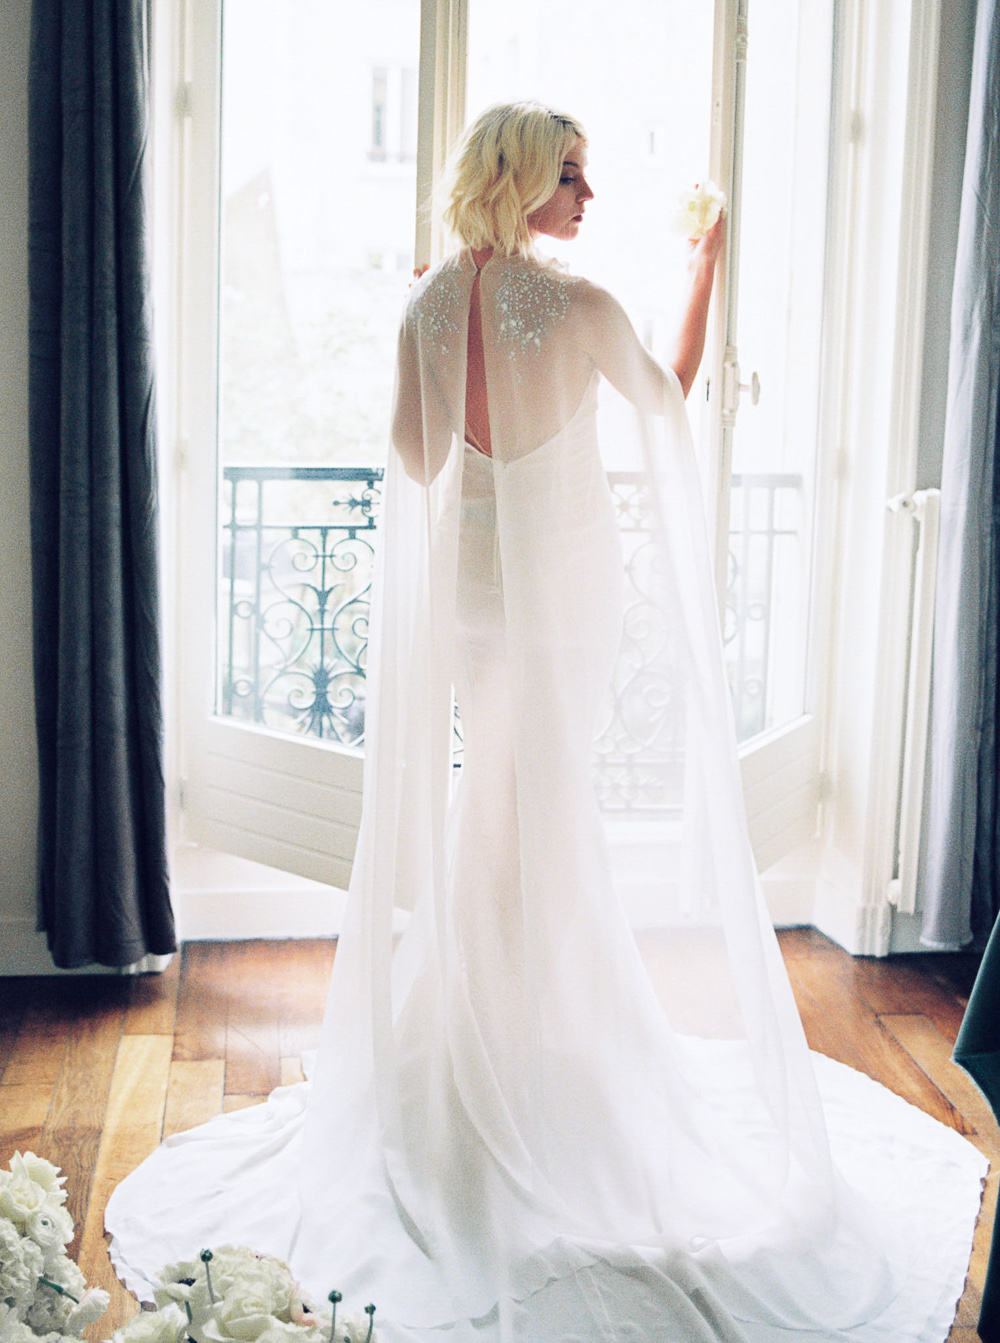 silk wedding gown with beaded cape paolo corona paris wedding | Paris wedding photography by Lara Lam